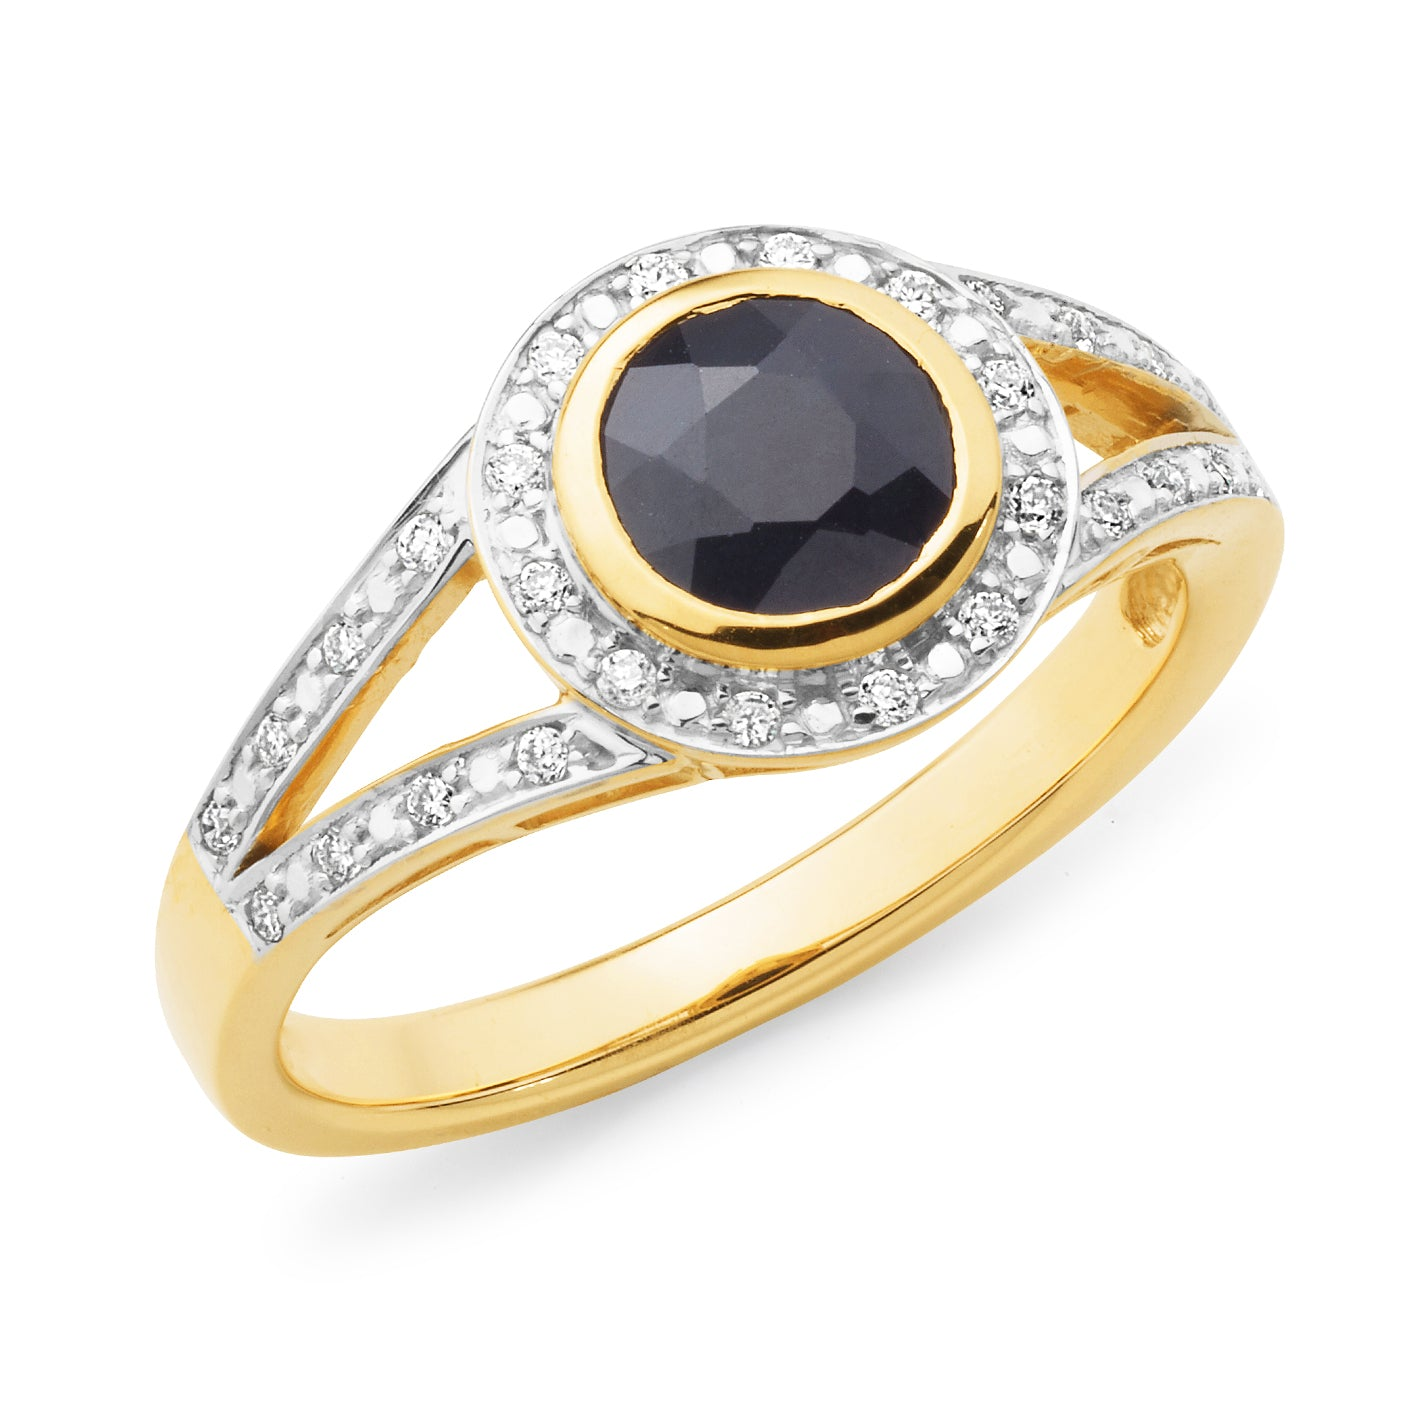 SAPPHIRE (D GRADE) & DIAMOND (SI3 JK) BEZEL/BEAD SET COLOURED STONE DRESS RING IN 9CT YELLOW GOLD TDW 0.14CT